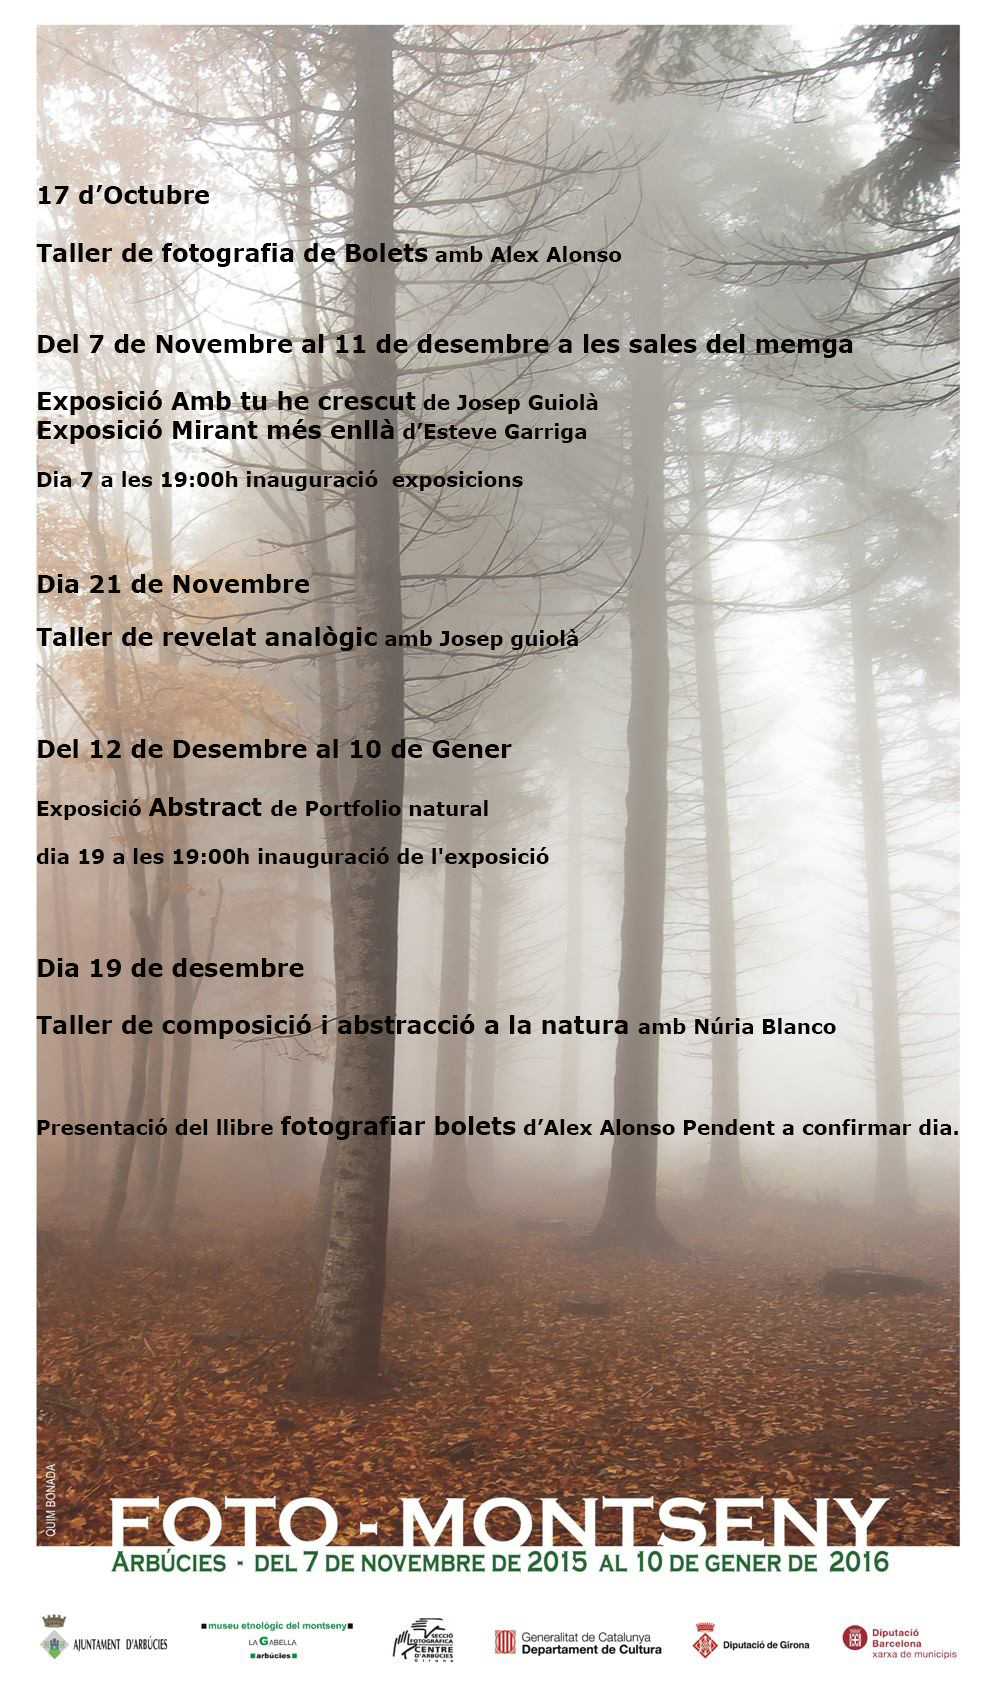 Activities PHOTO-MONTSENY 2015